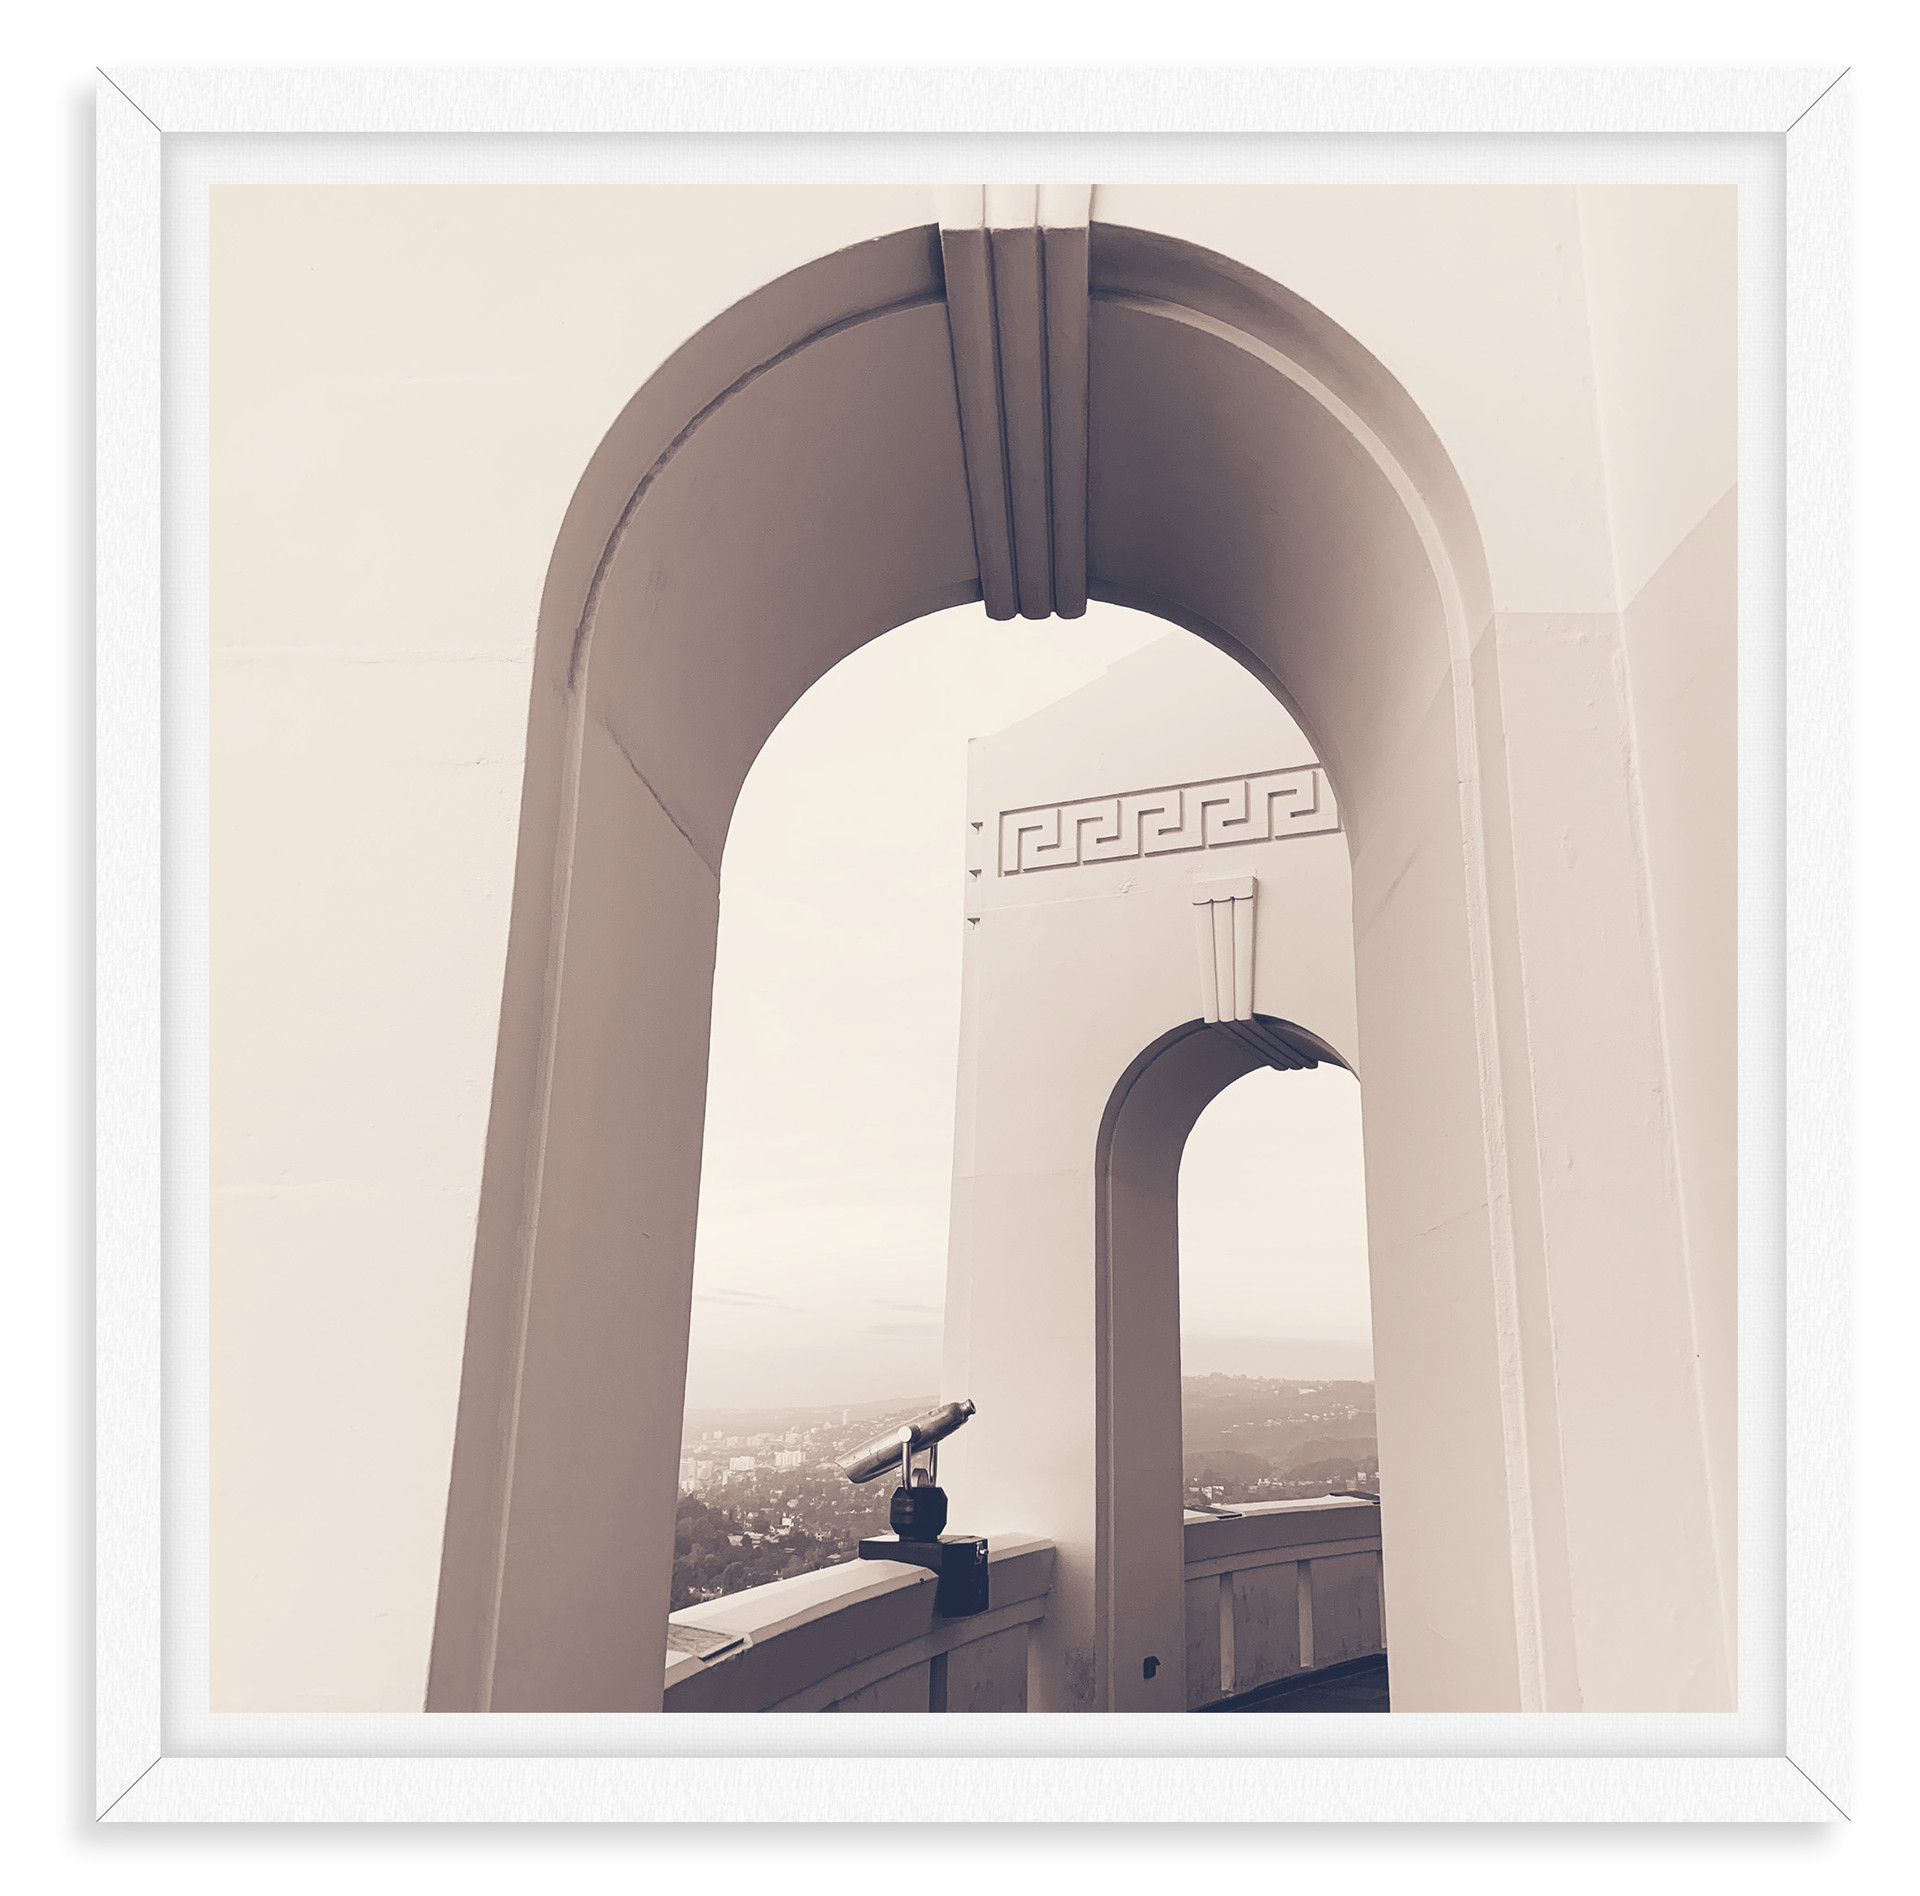 griffith park observatory arches archite